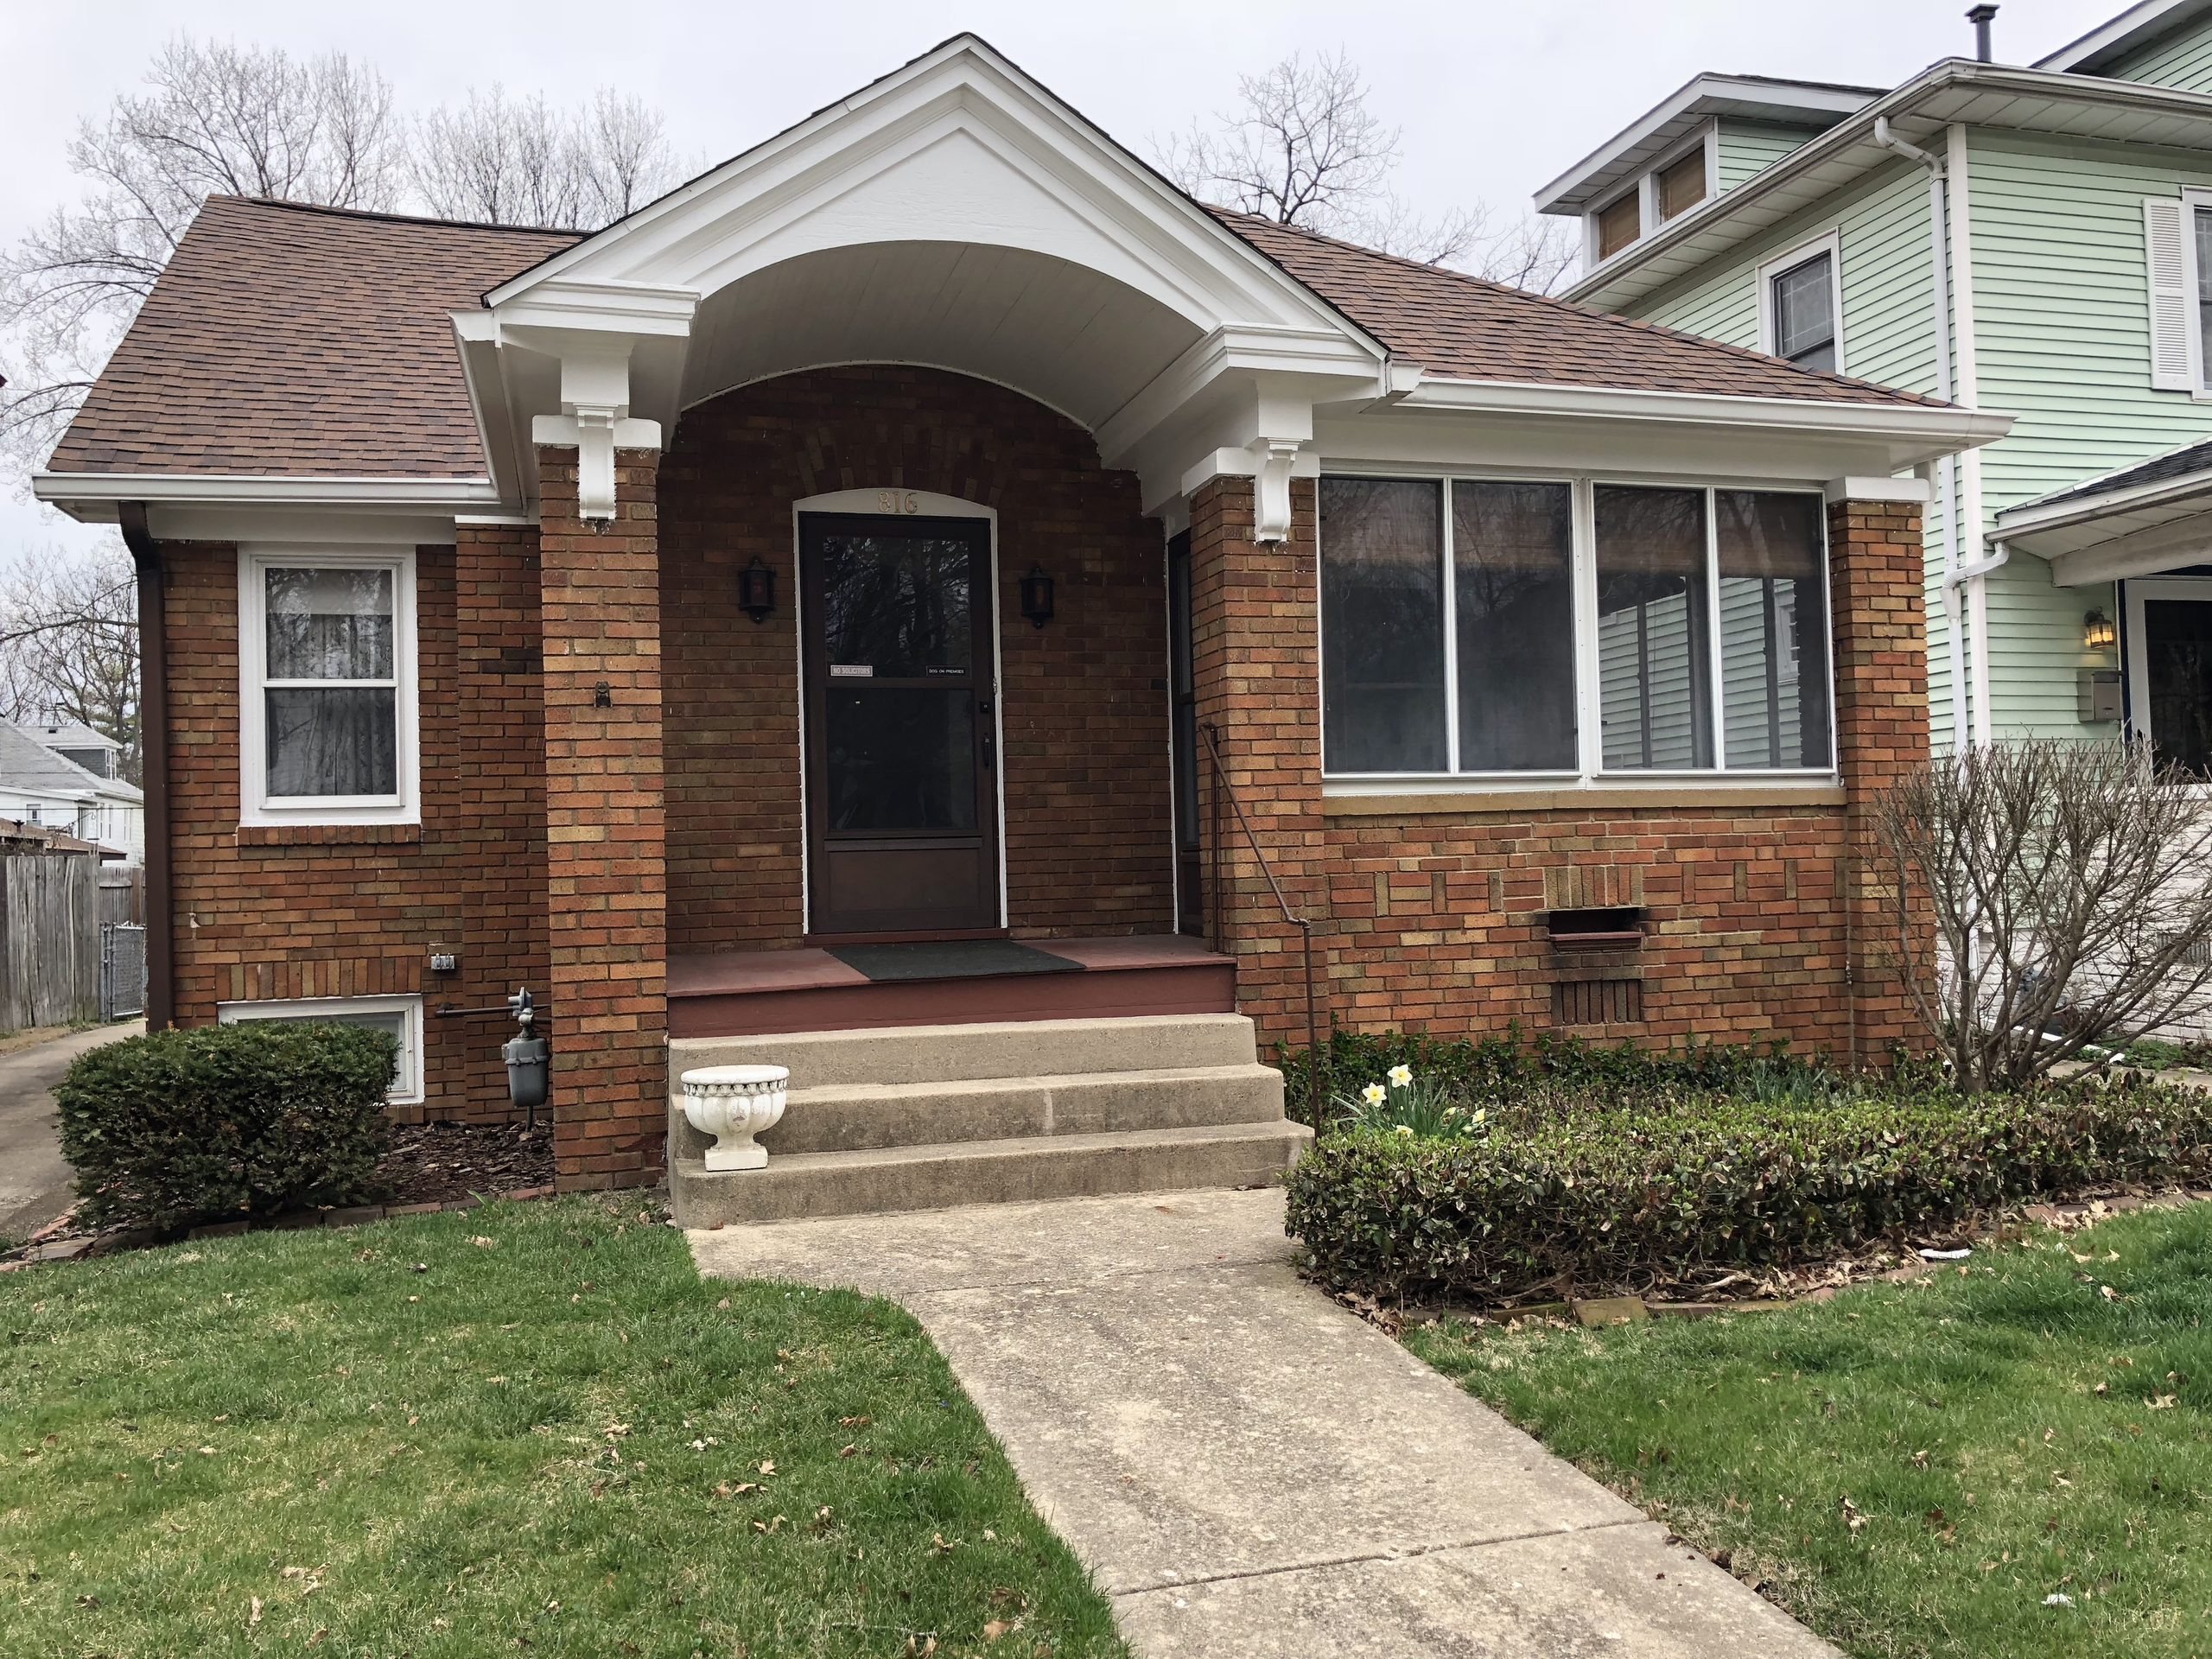 816 S State St, Springfield, IL 62704